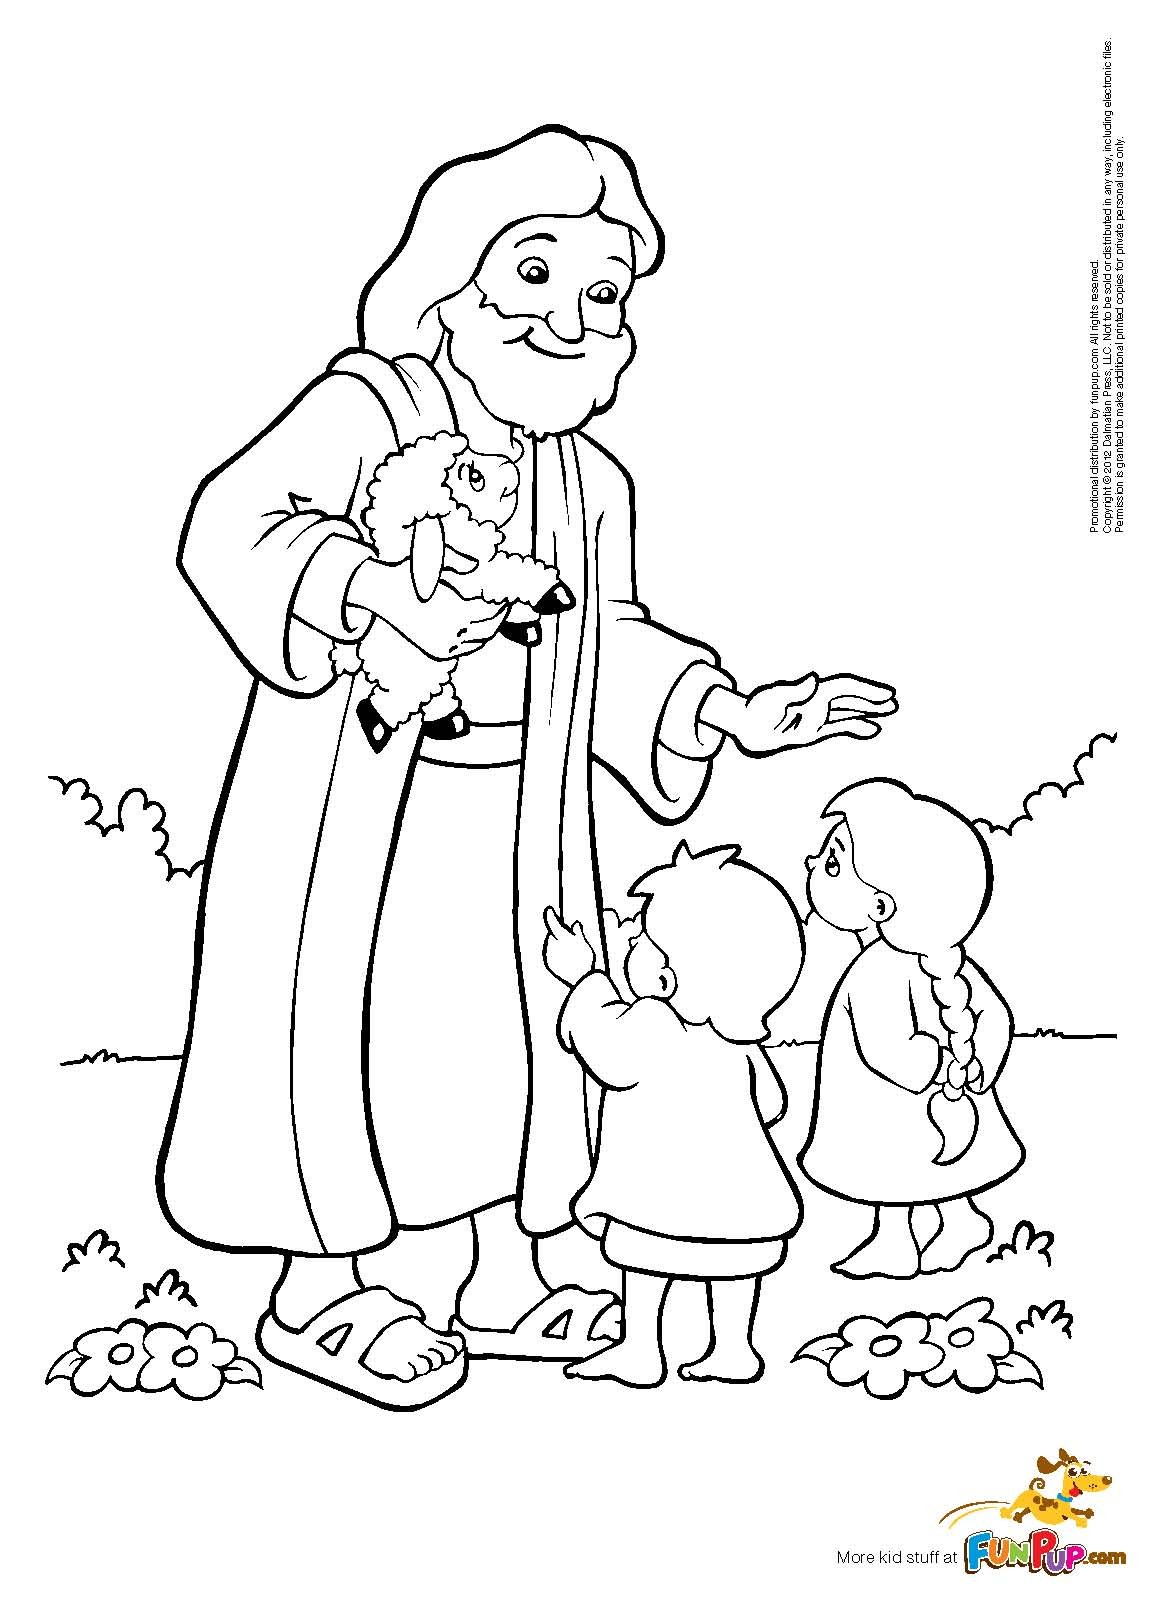 Happy Birthday Jesus Coloring Pages Only Coloring Pages Coloring Pages Free Jesus